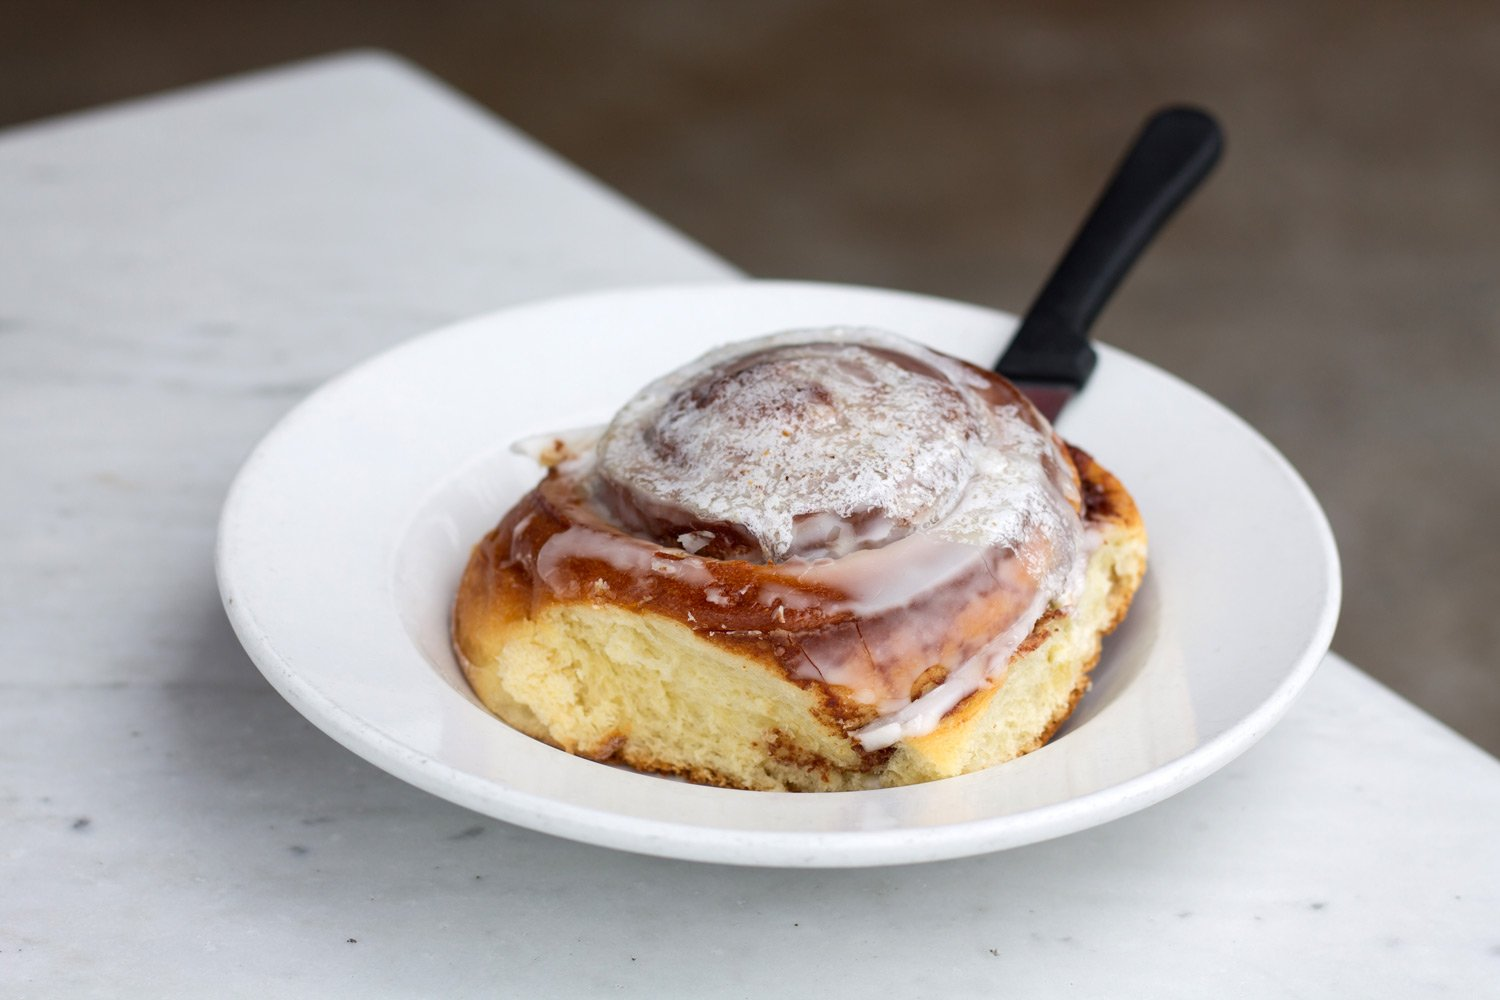 Cinnamon Roll from Harry's Coffee Shop